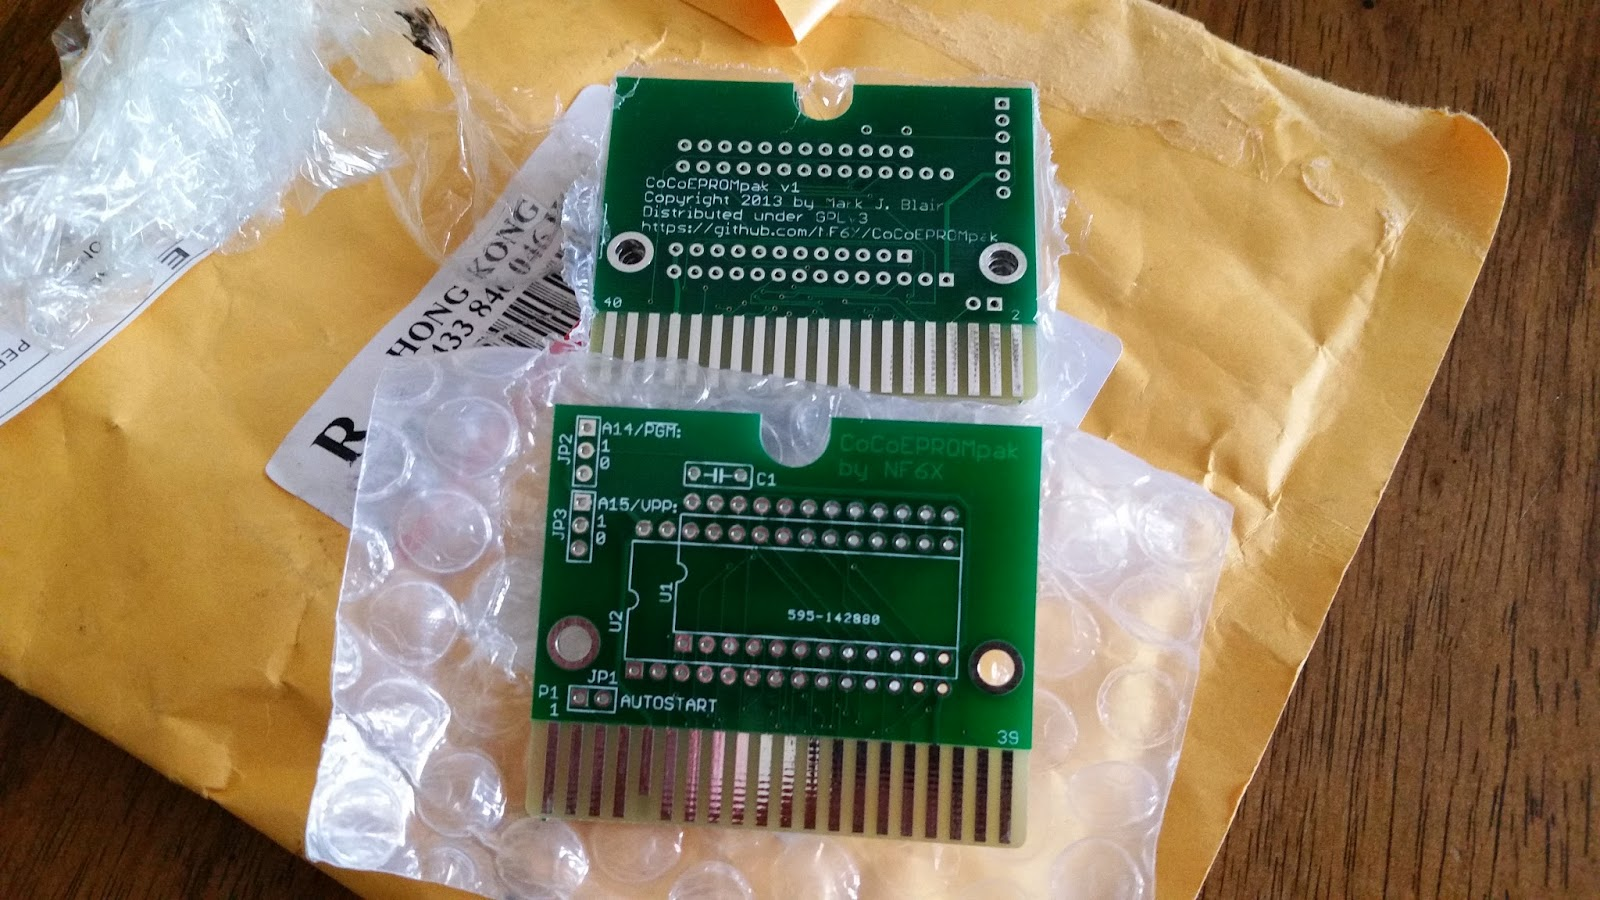 The Making of Fahrfall: Circuit Boards